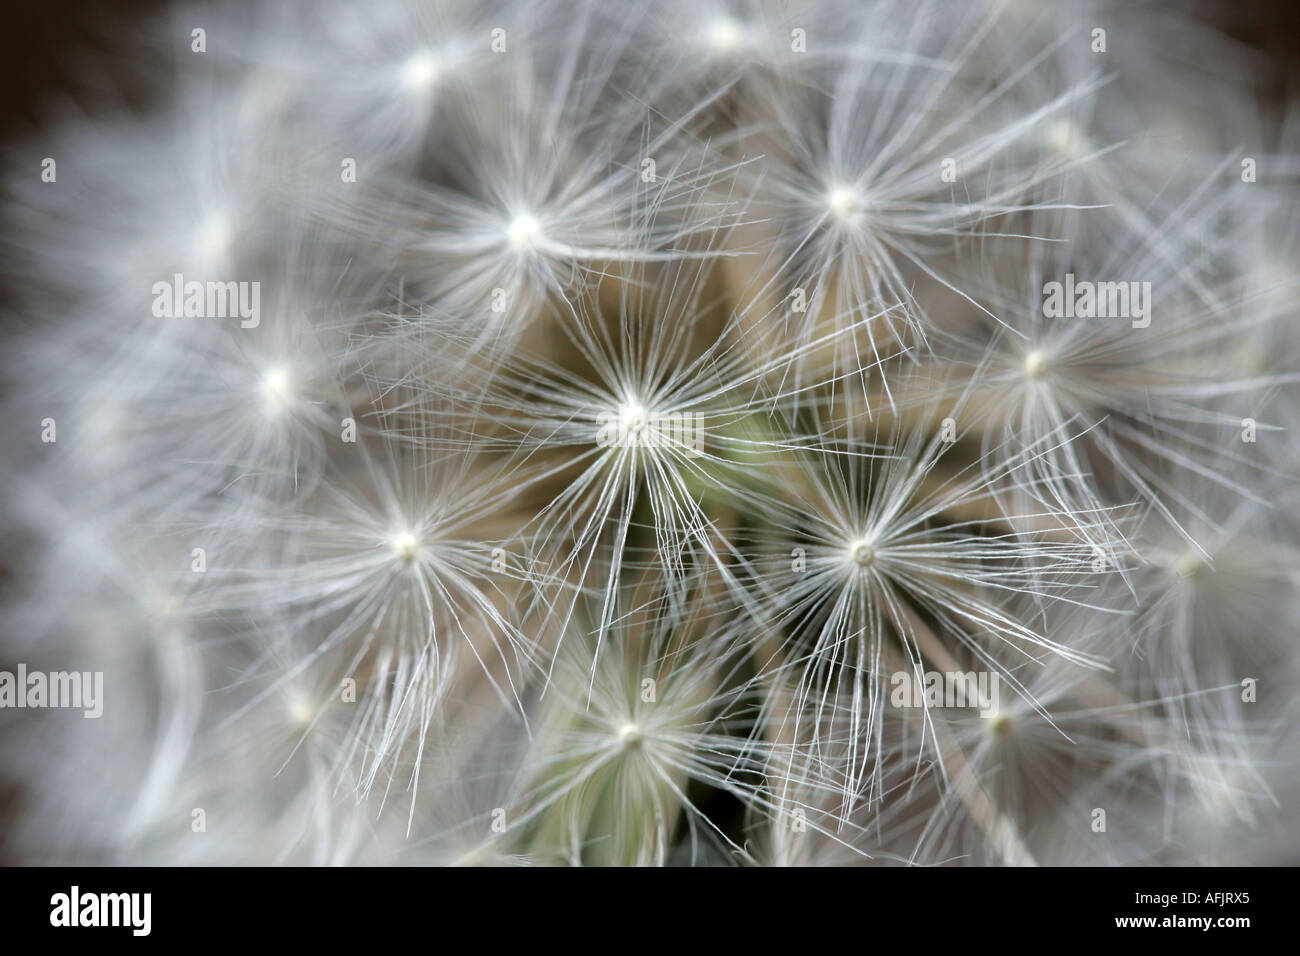 clock head of dandelion taraxacum officinale flower in garden family N O Compositae - Stock Image